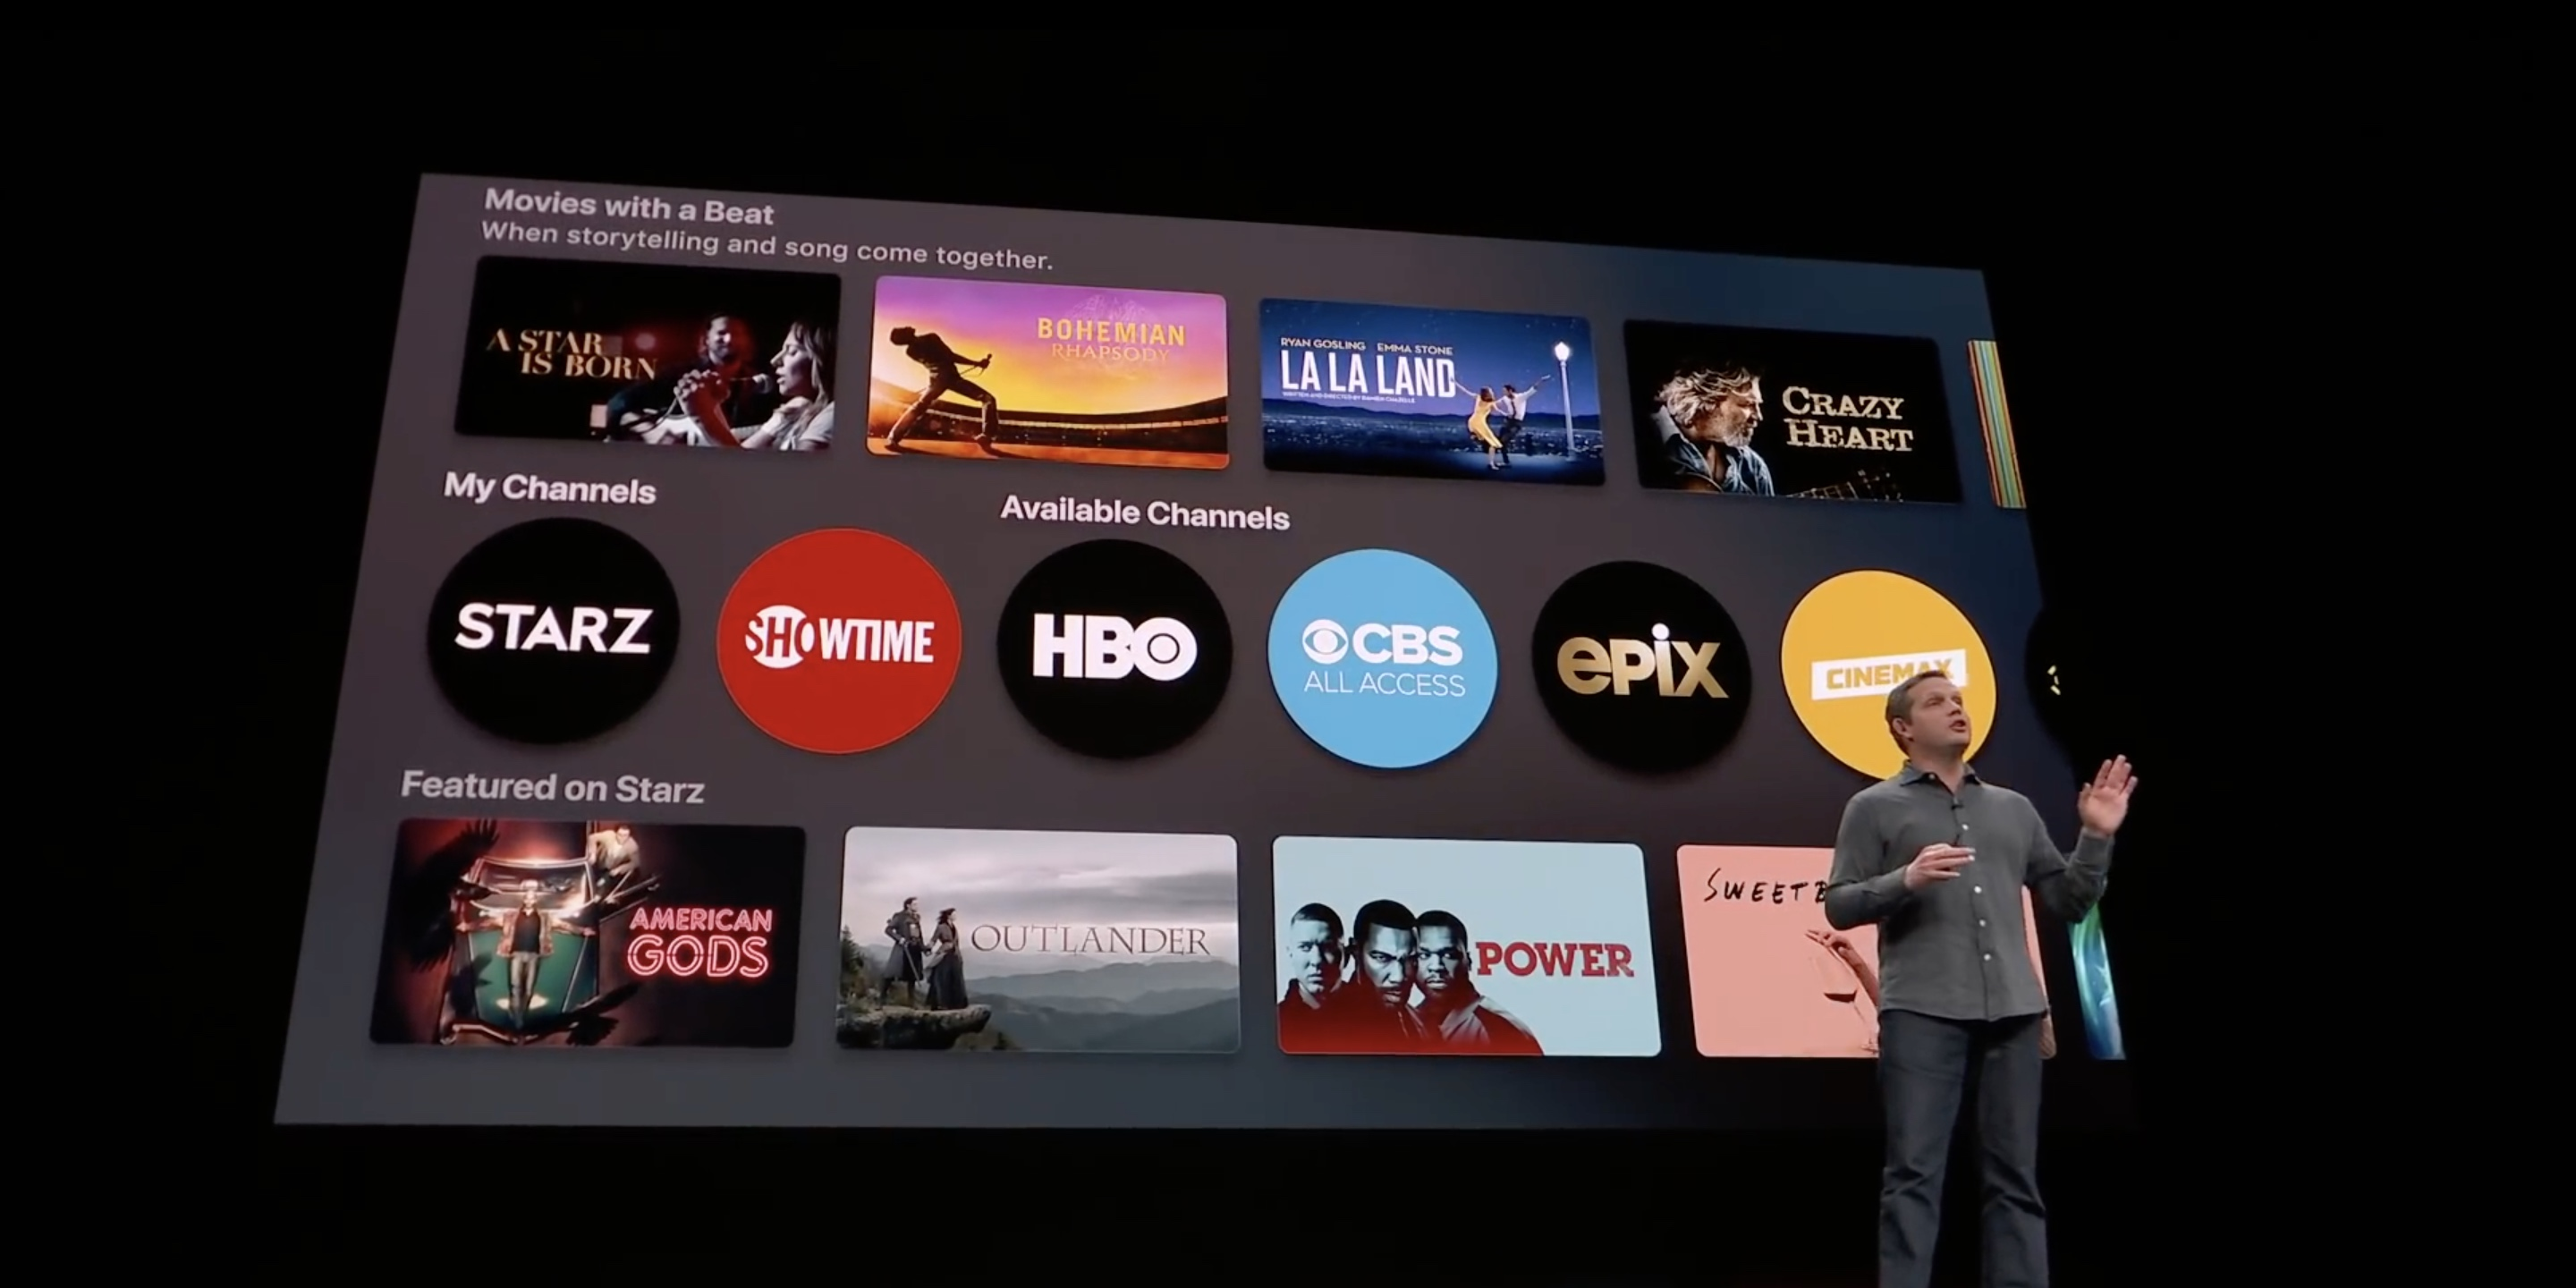 Hbo Stops Participating In Apple Tv Channels Users Directed To Hbo Max App 9to5mac